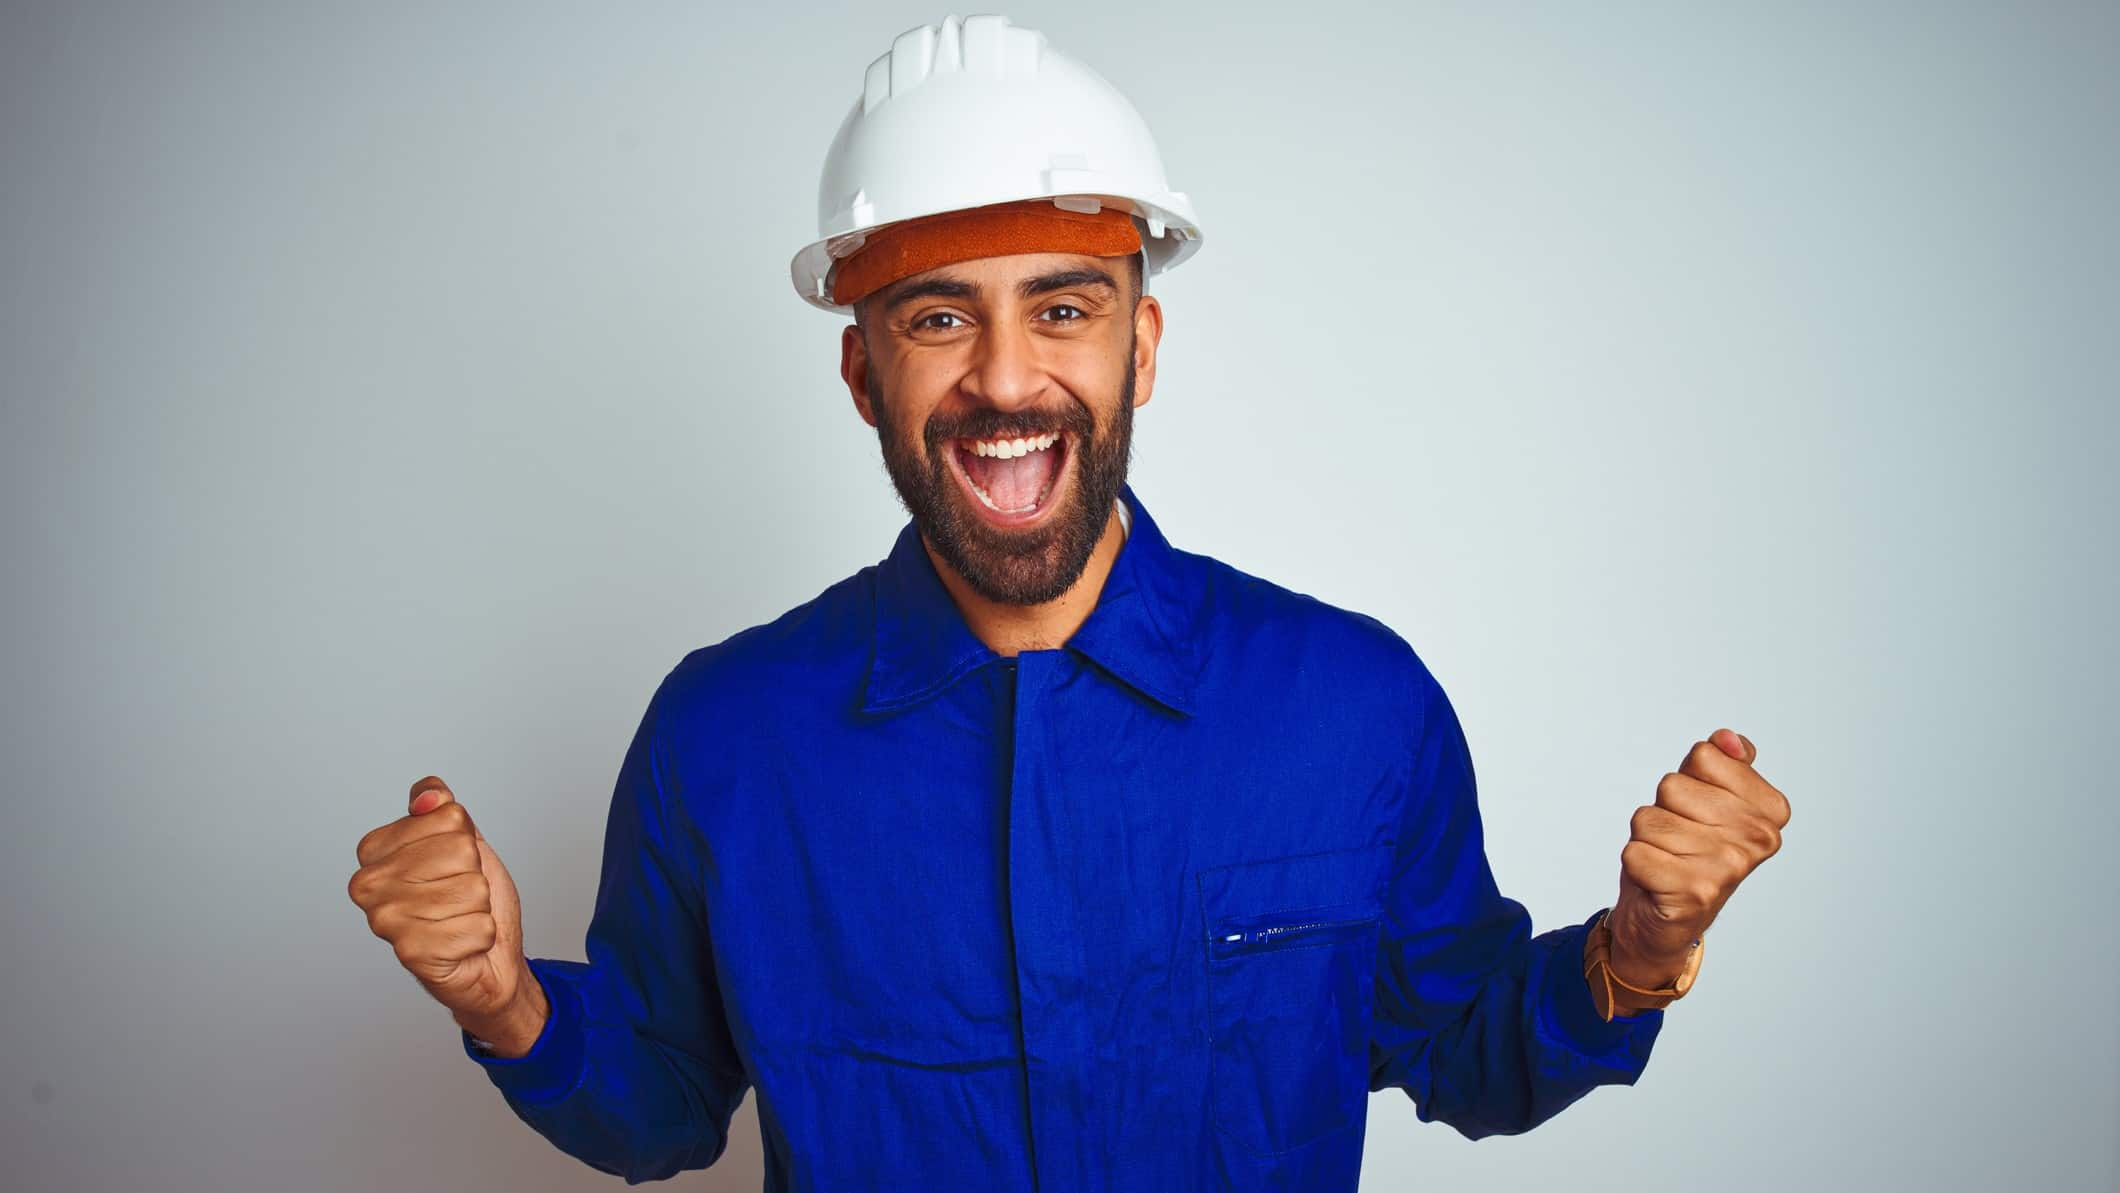 Man in white hard hat cheers with fists pumped